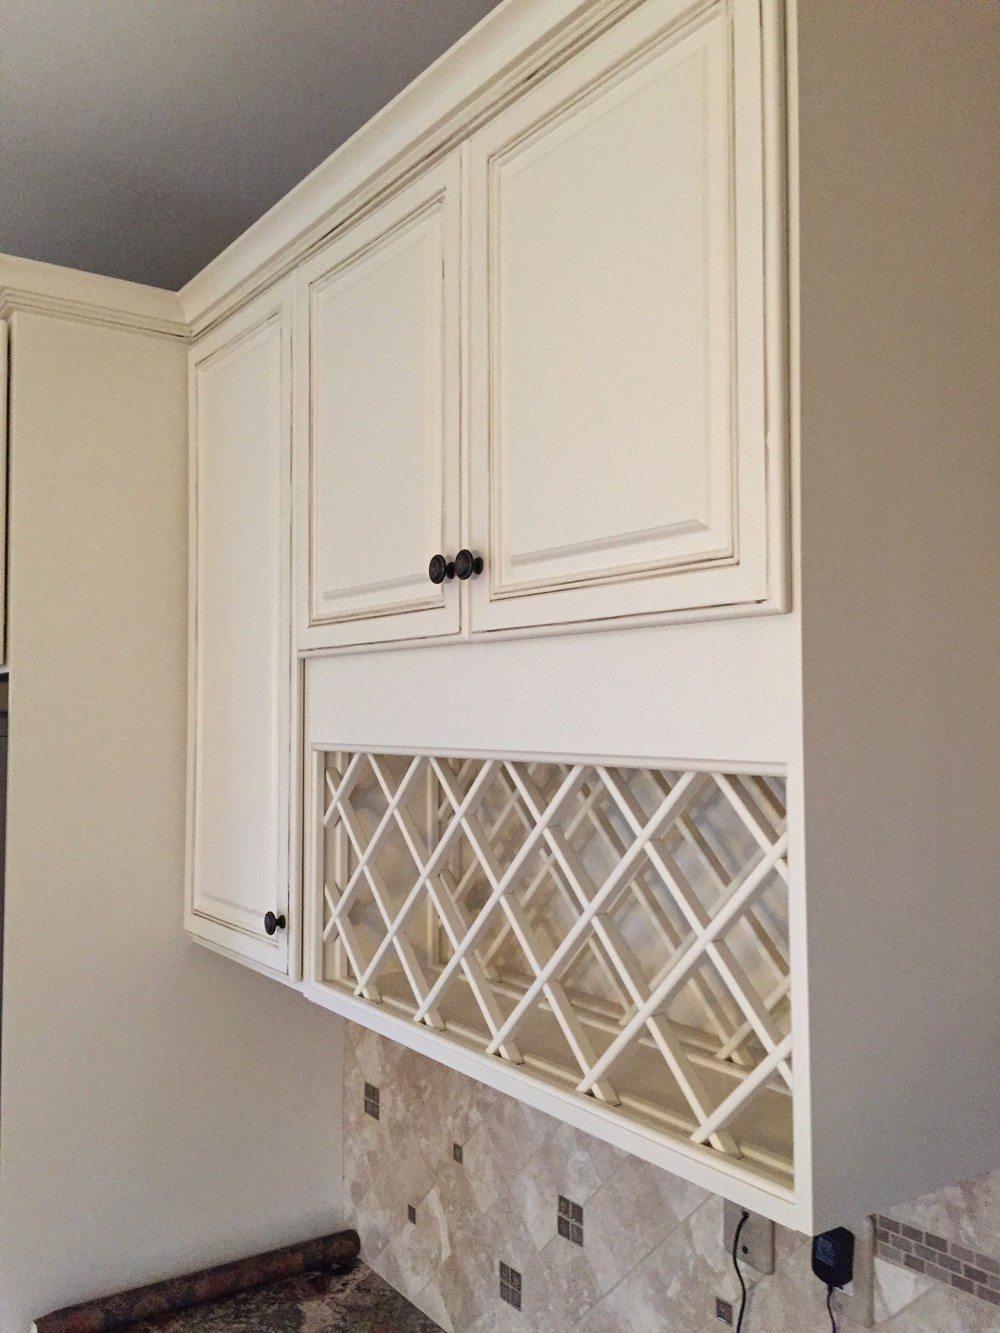 kitchencabinetpainting